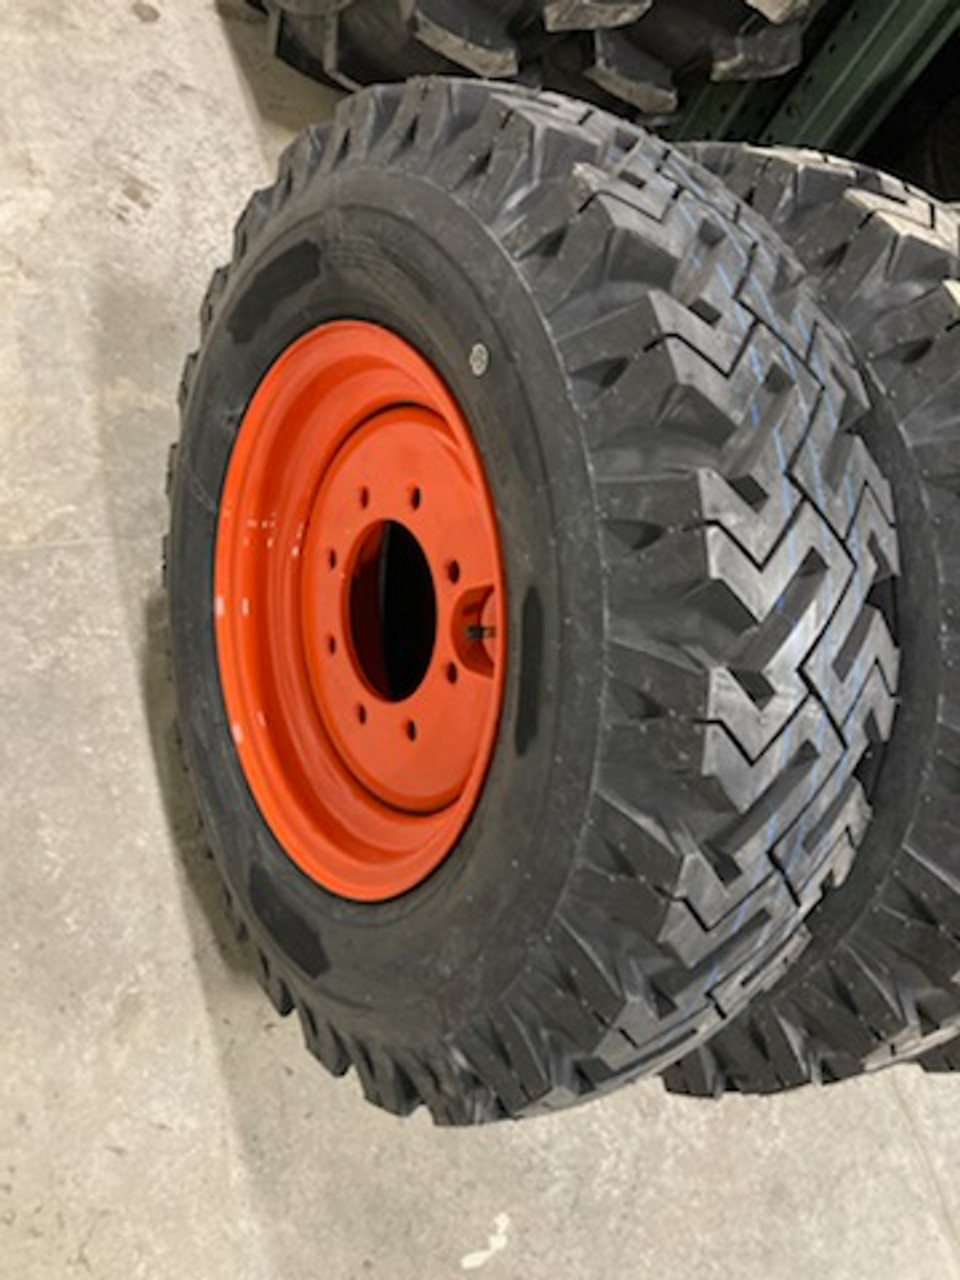 New 7.50 16 Mud & Snow 12 ply Tire & Wheel Kits for Skid Loader replaces 10-16.5 12-16.5  3195lbs